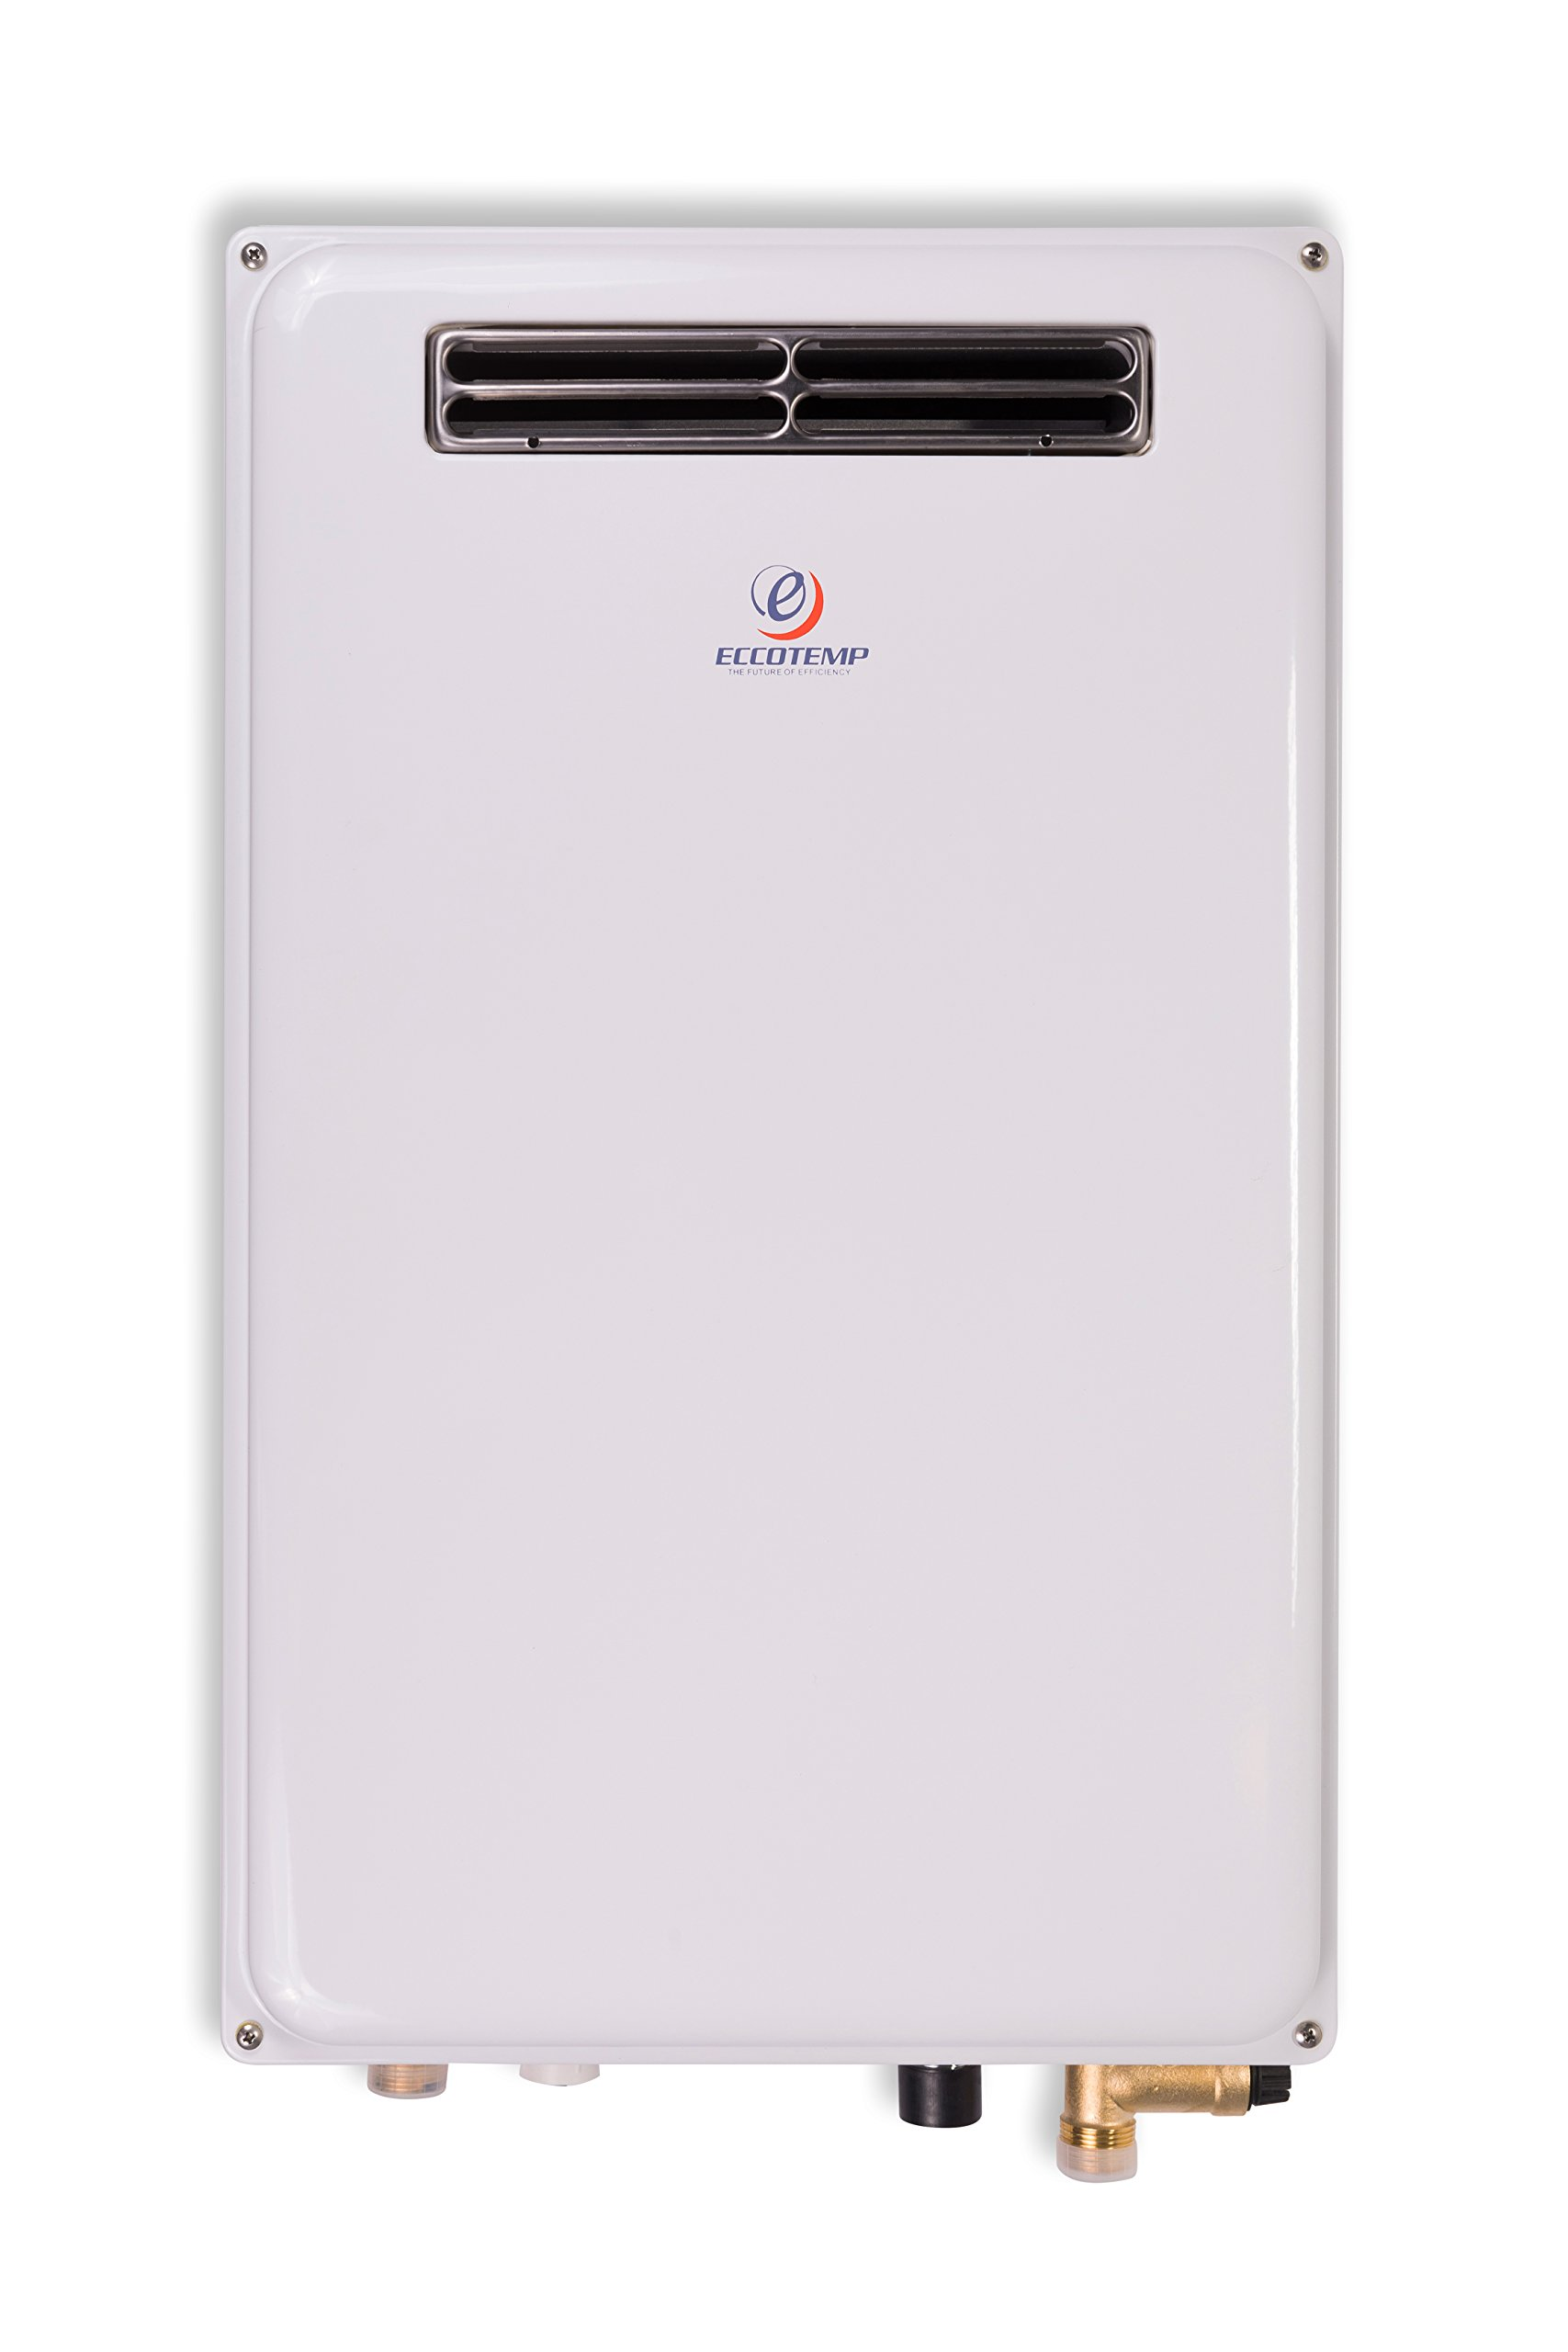 Eccotemp 45H-NG Outdoor 6.8 GPM Natural Gas Tankless Water Heater, White